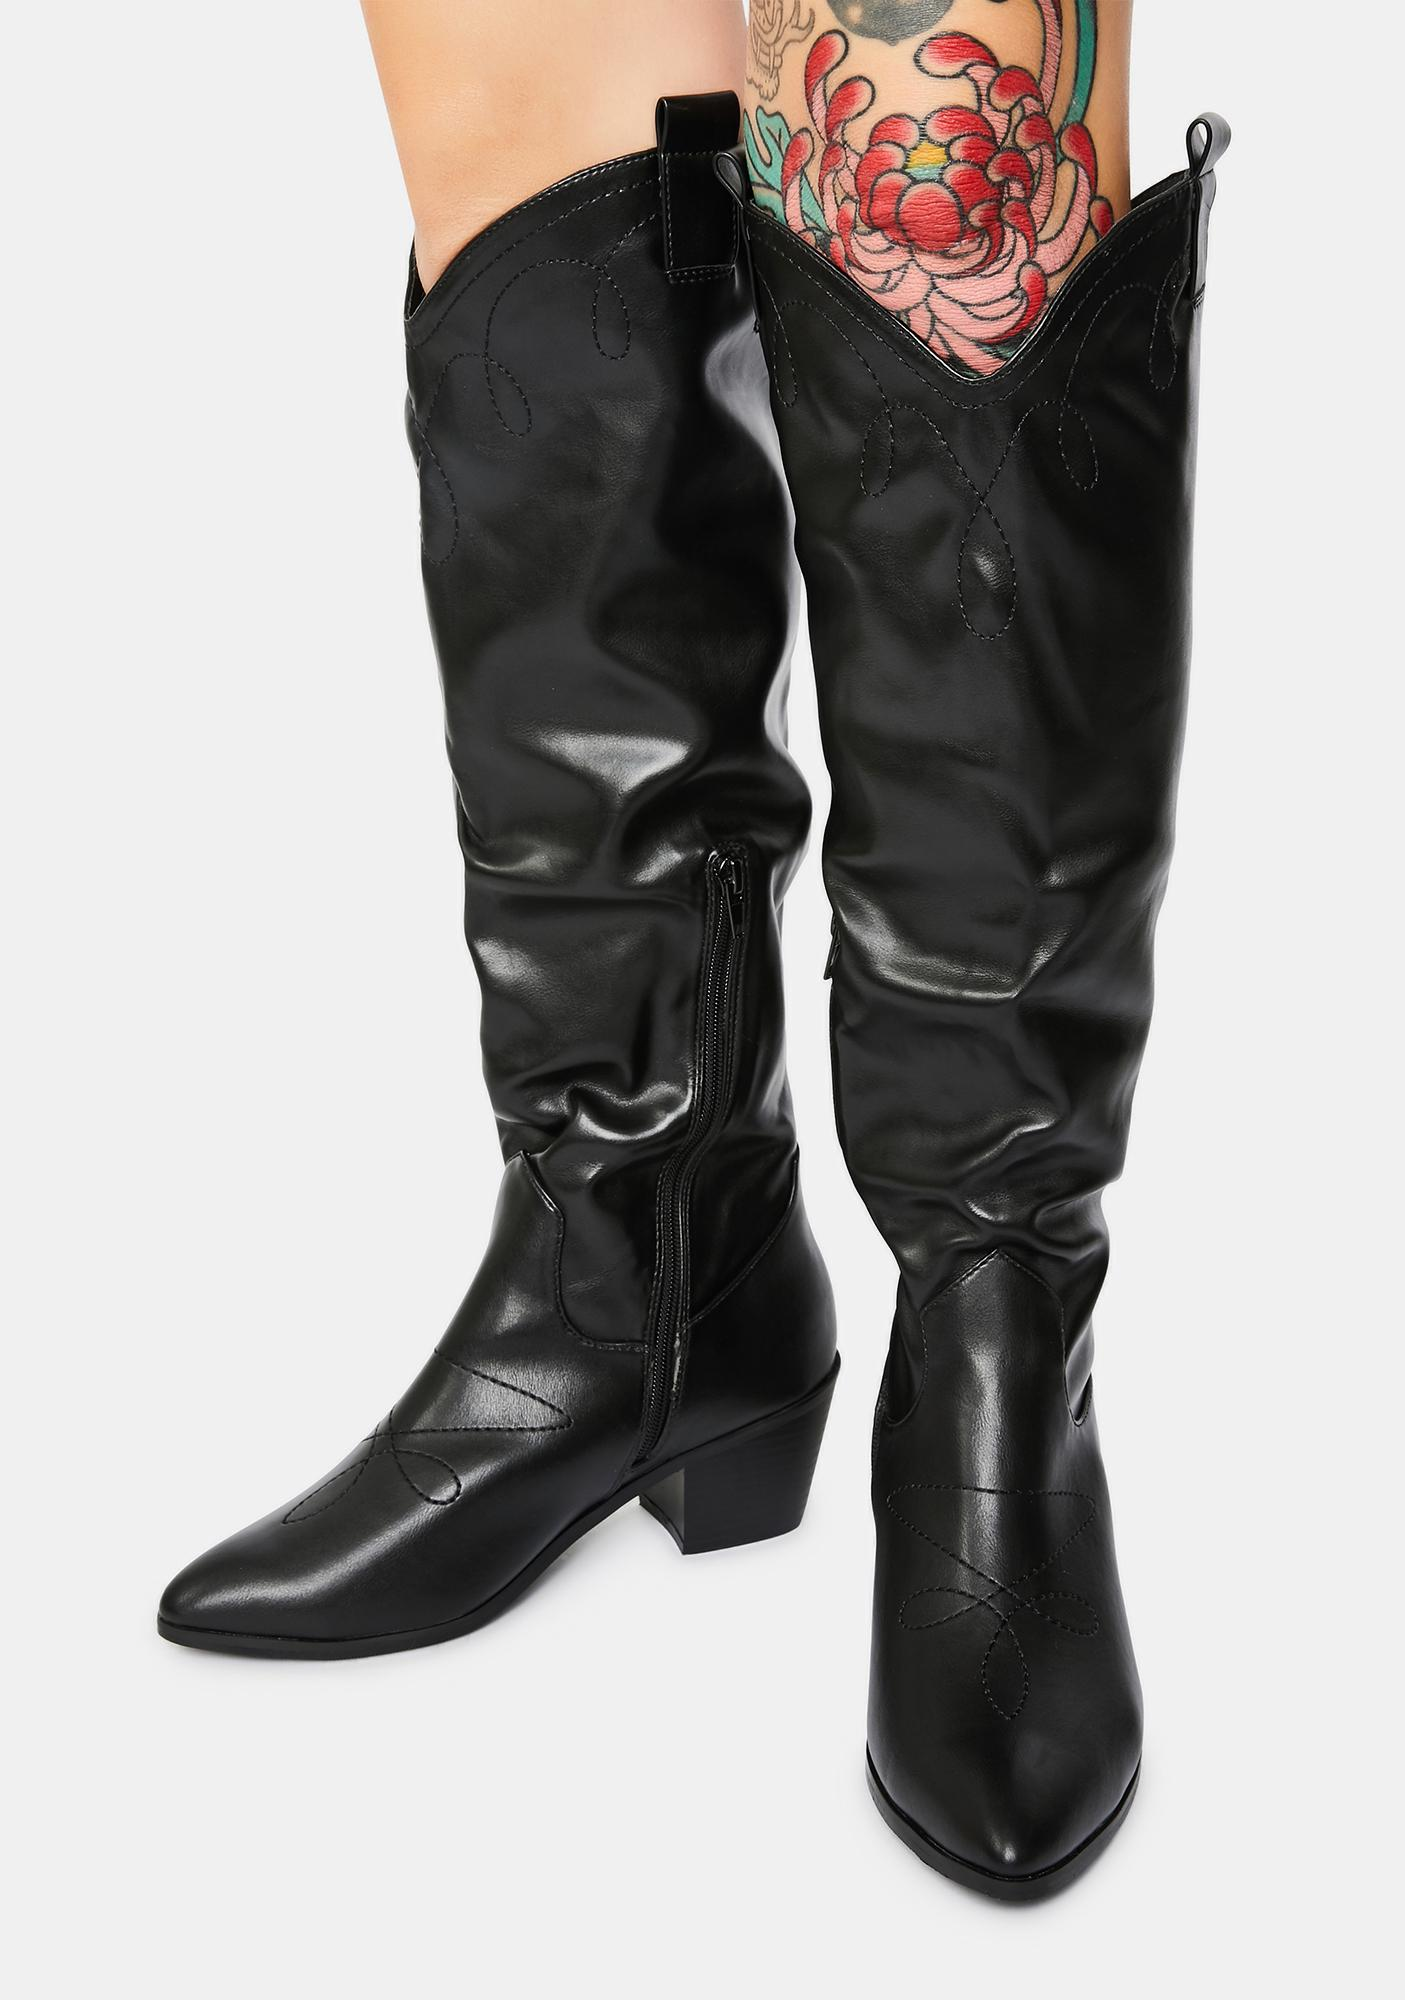 4TH & RECKLESS Jayne Knee High Cowboy Boots